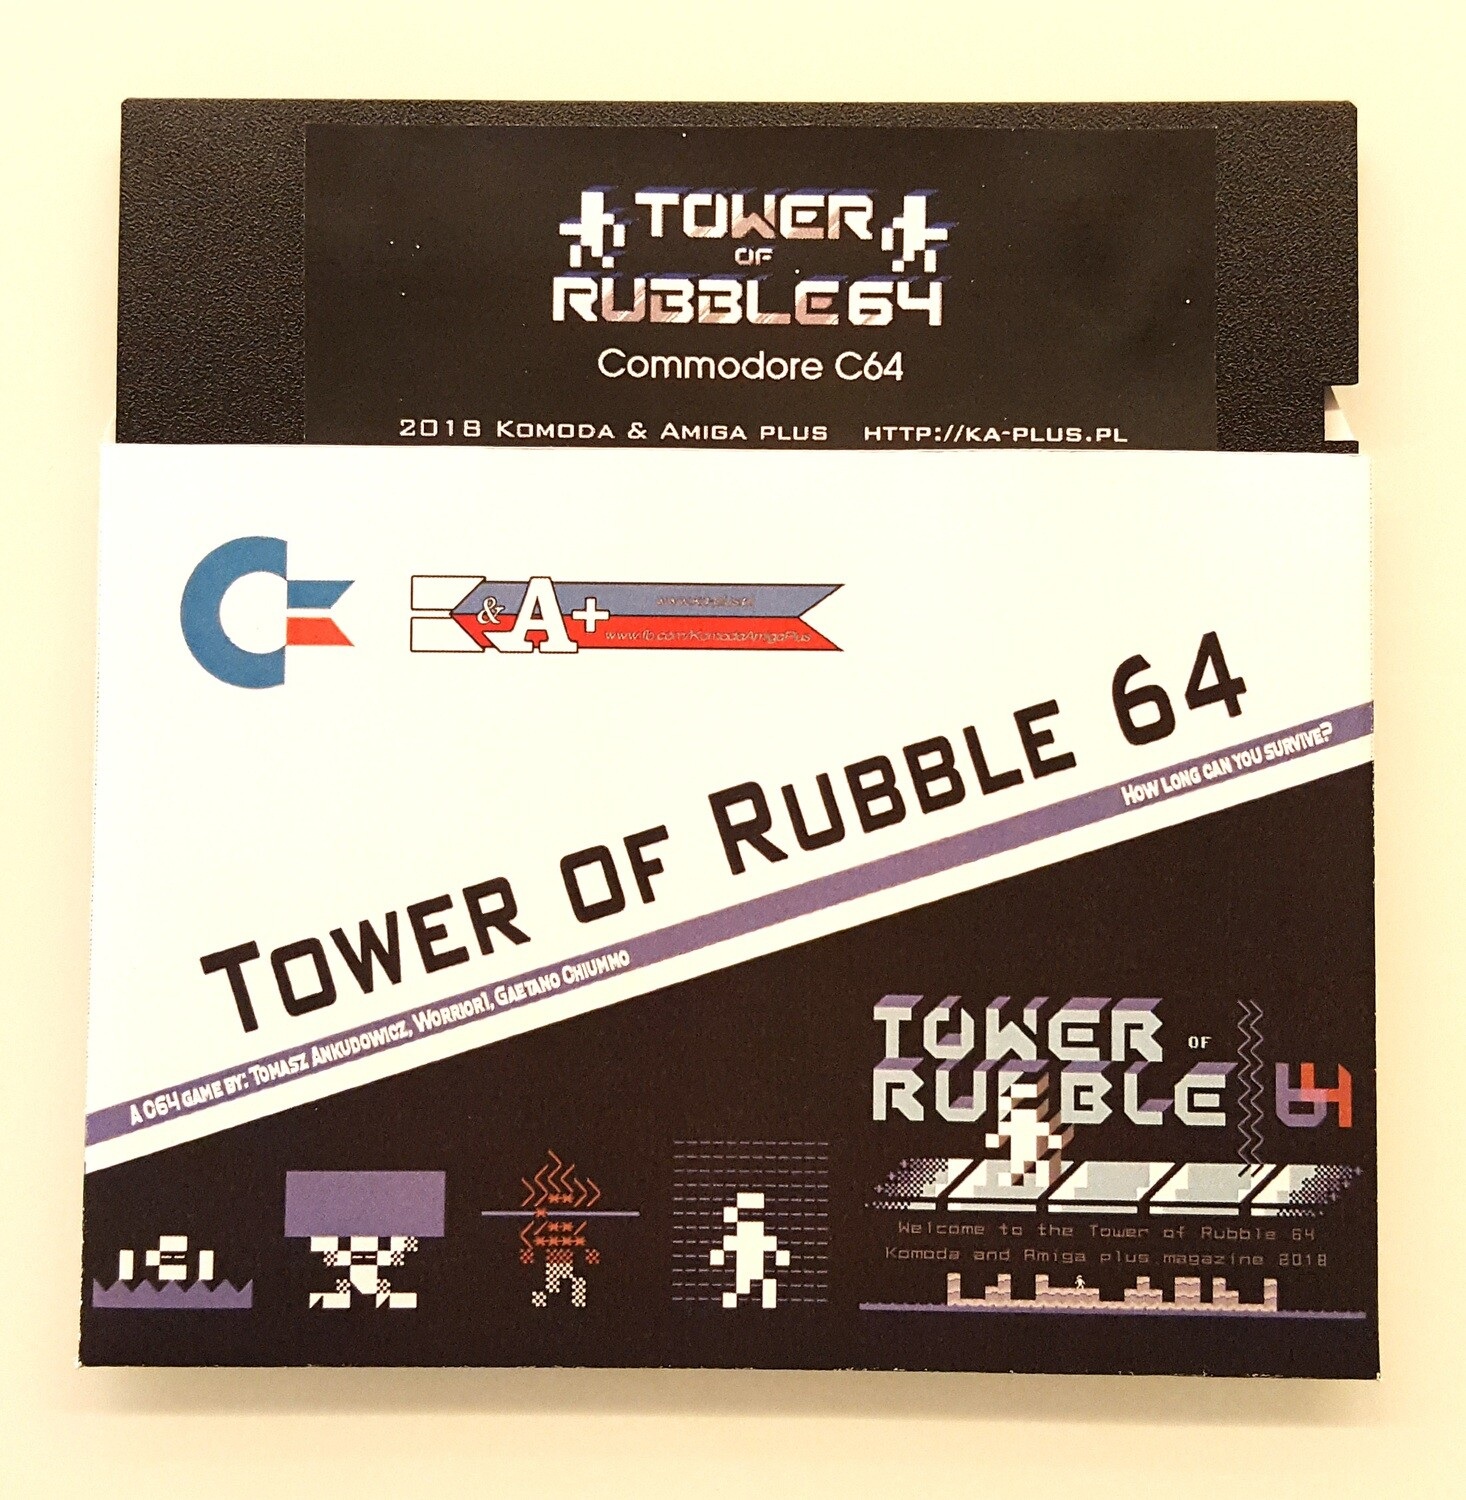 Tower of Rubble 64